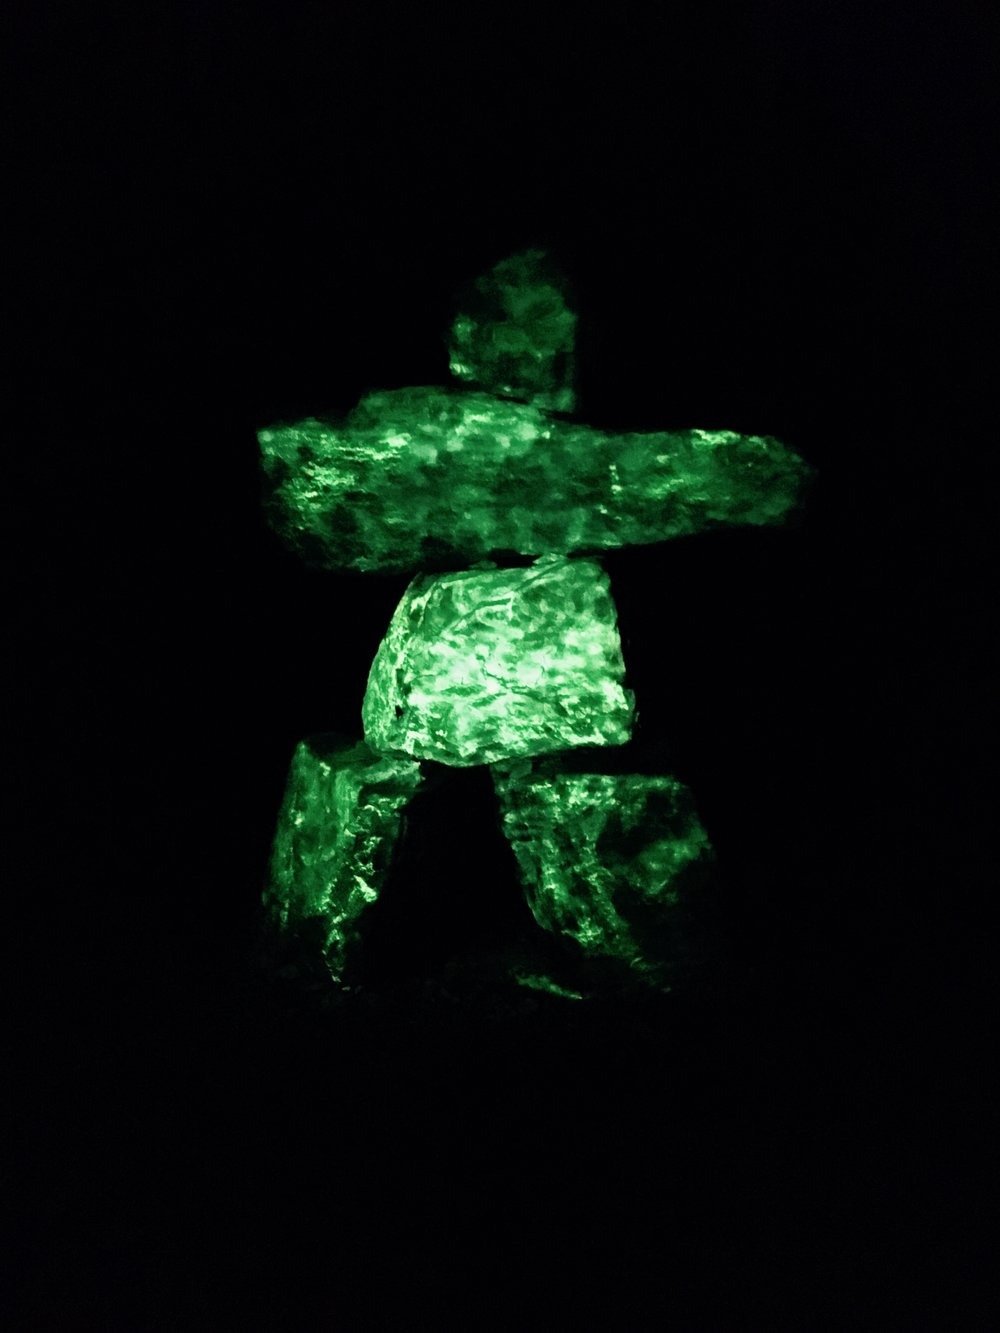 Watch for a Glowing Inukshuk!